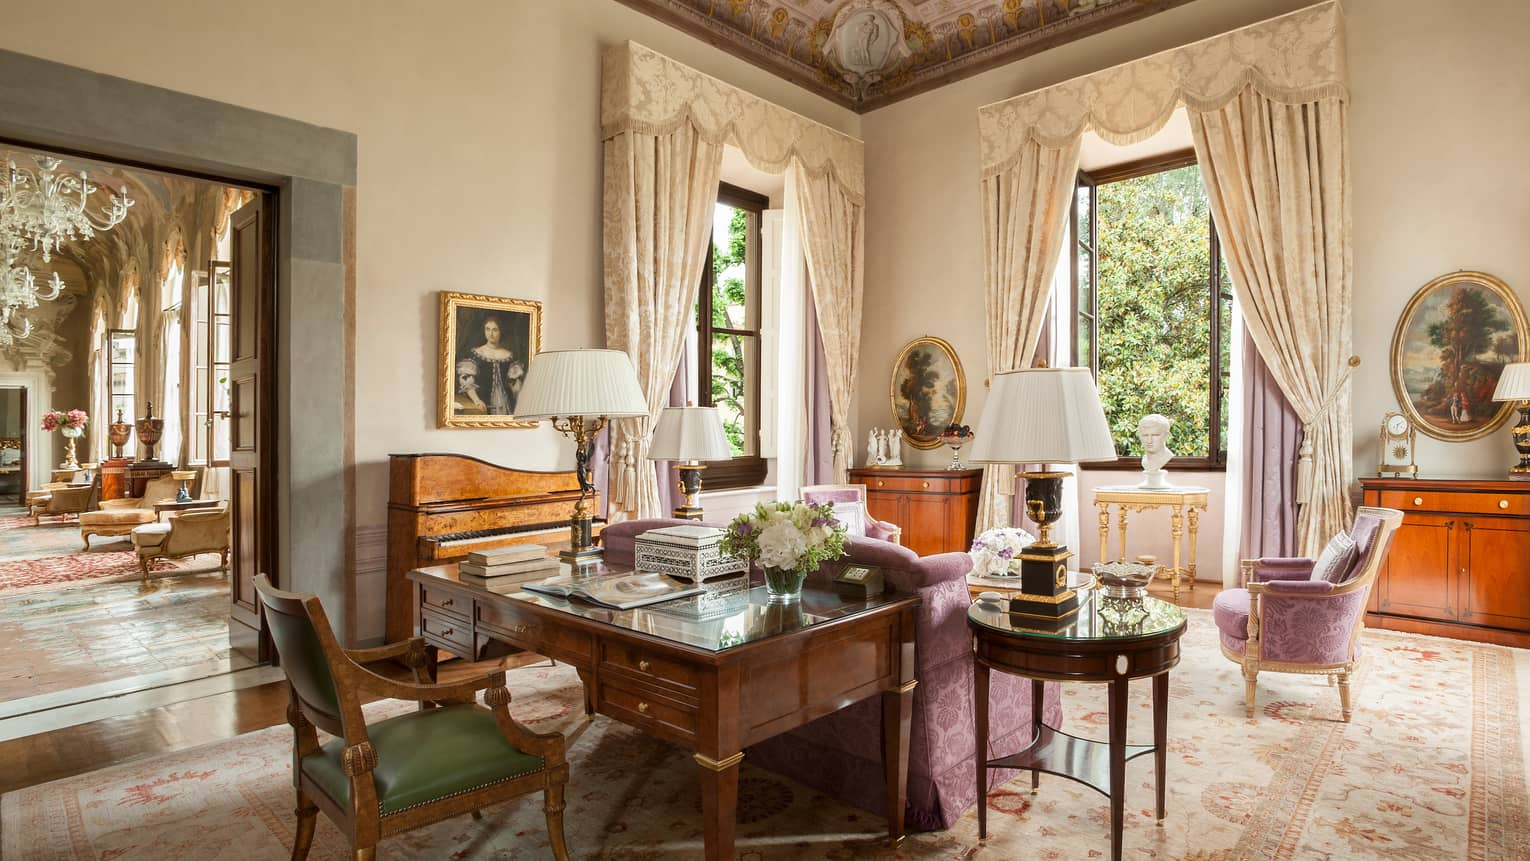 Albergo Firenze Florence Italy Florence Hotel Suites Rooms Four Seasons Hotel Firenze